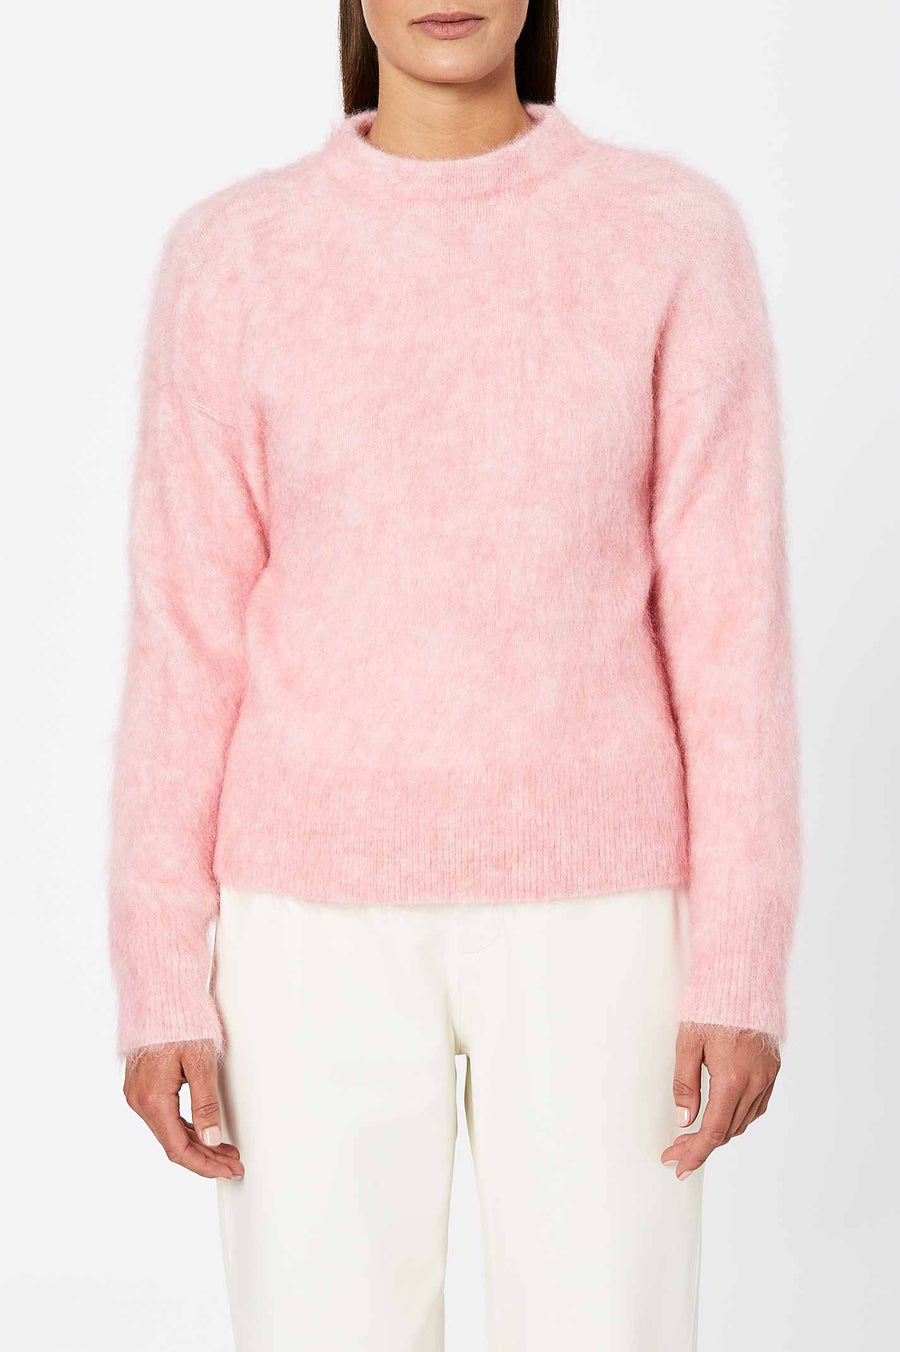 Constructed from a luxuriously soft mohair blend, elevate your winter looks with the Brushed Mohair Sweater